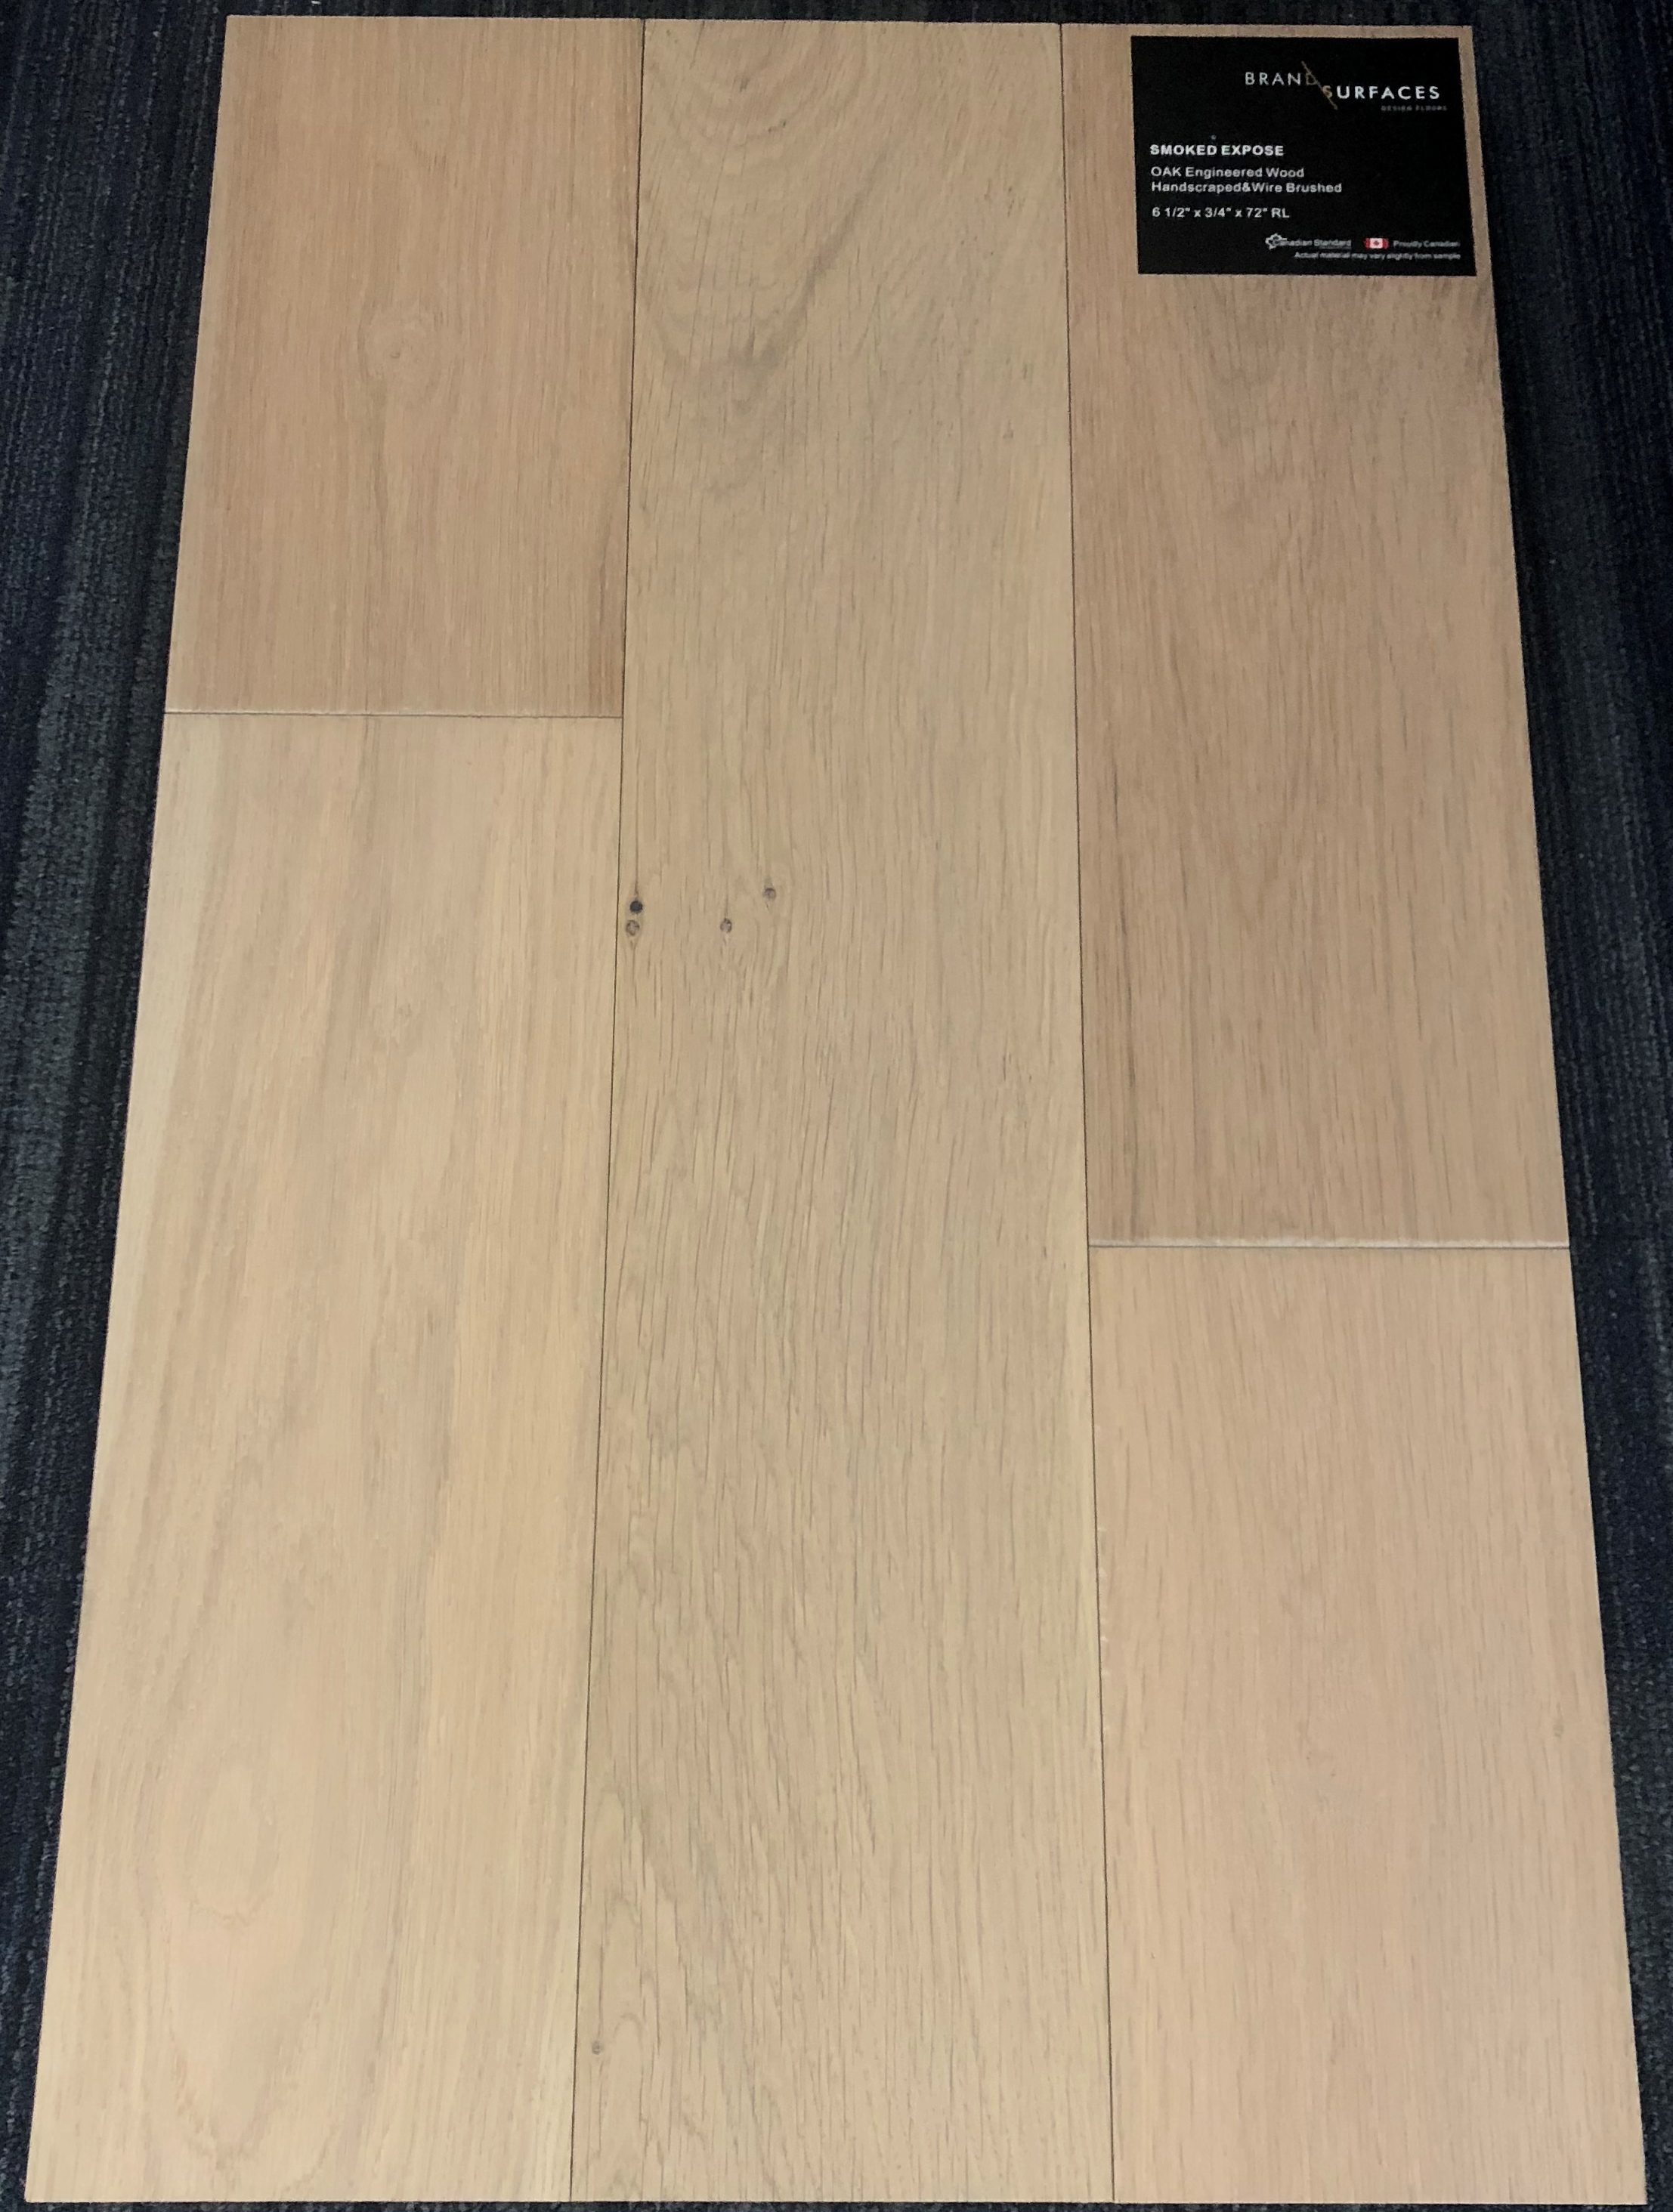 Smoked Expose Brand Surfaces Oak Handsed Wire Brush Engineered Flooring Size 6 1 2